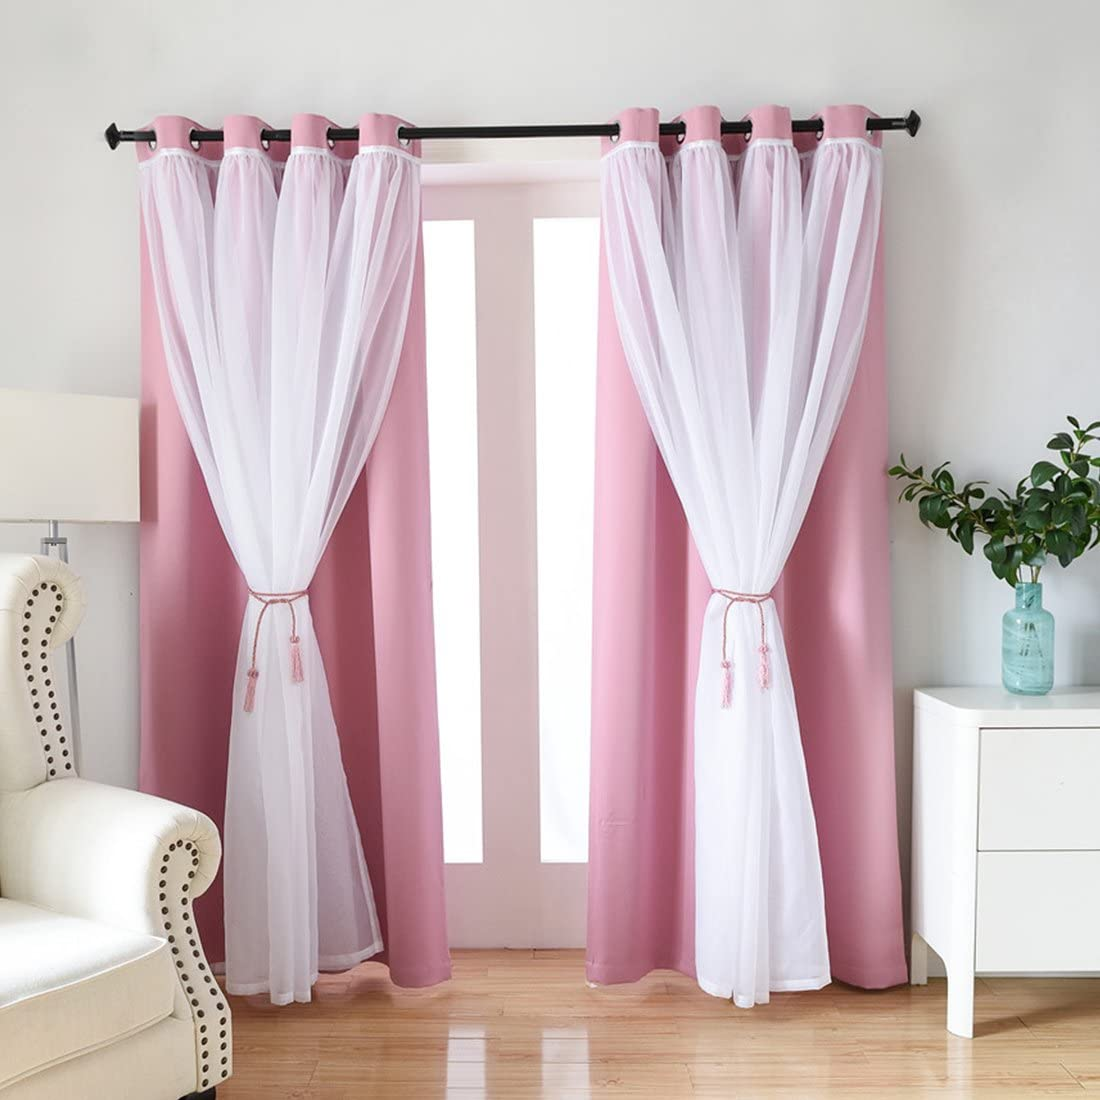 Didihou Voile Mix Match Blackout Curtain Elegant Panel Double Layer Darkening Thermal Insulated Window Treatment Grommet Drapes for Living Room Girls Bedroom, 1 Panel 52W x 63L Inch, Pink